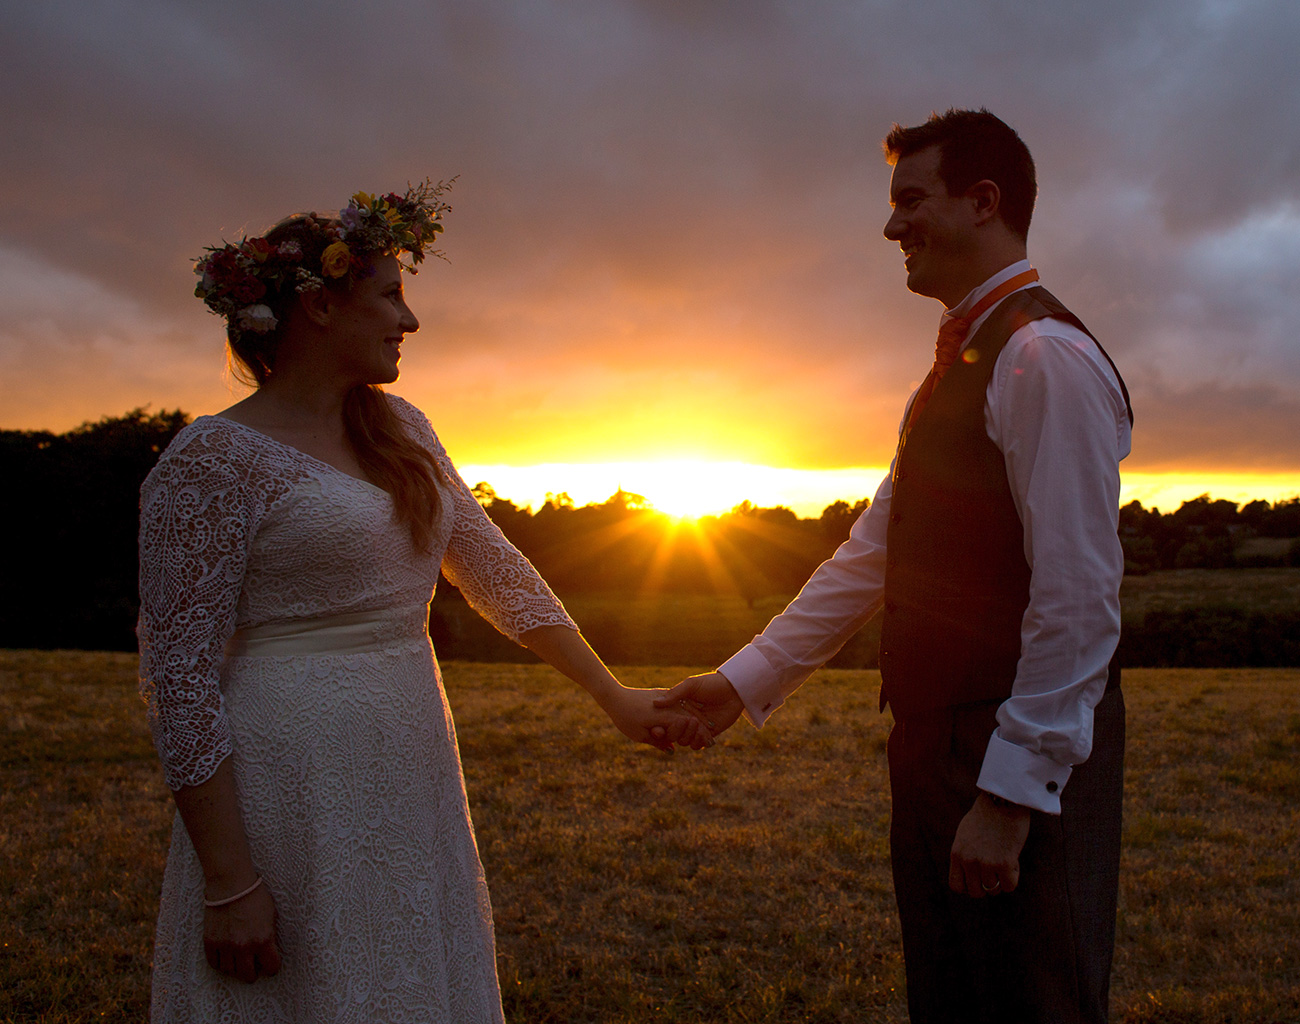 festival wedding sunset bride groom wedfest